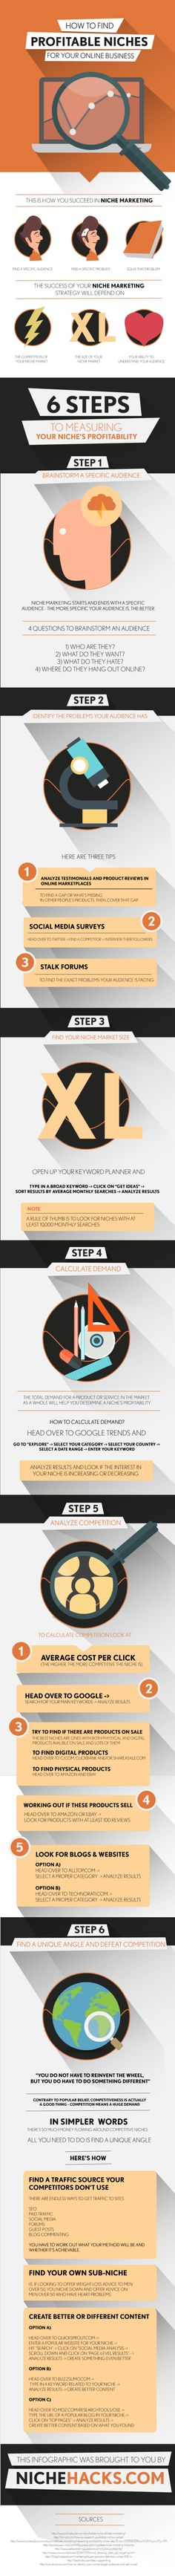 What Are 6 Steps To Finding Profitable Niches For Your Online Business? #infographic